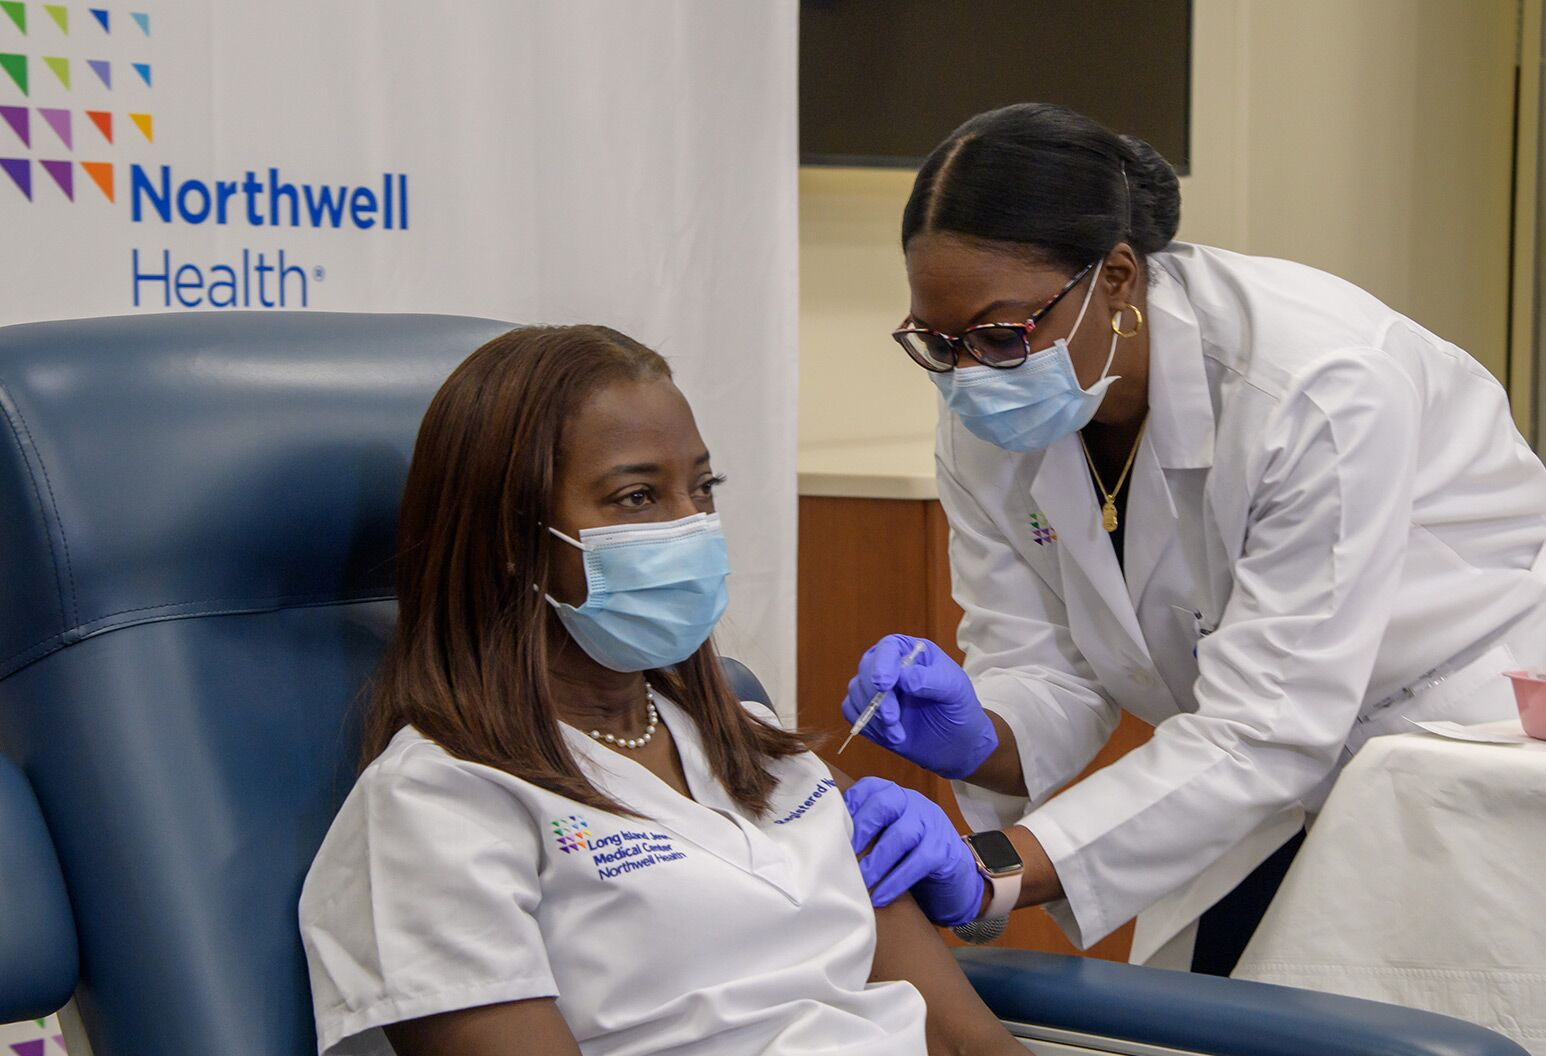 African American woman in mask and scrubs sits in chair as another African American woman in mask and lab coat holds a syringe